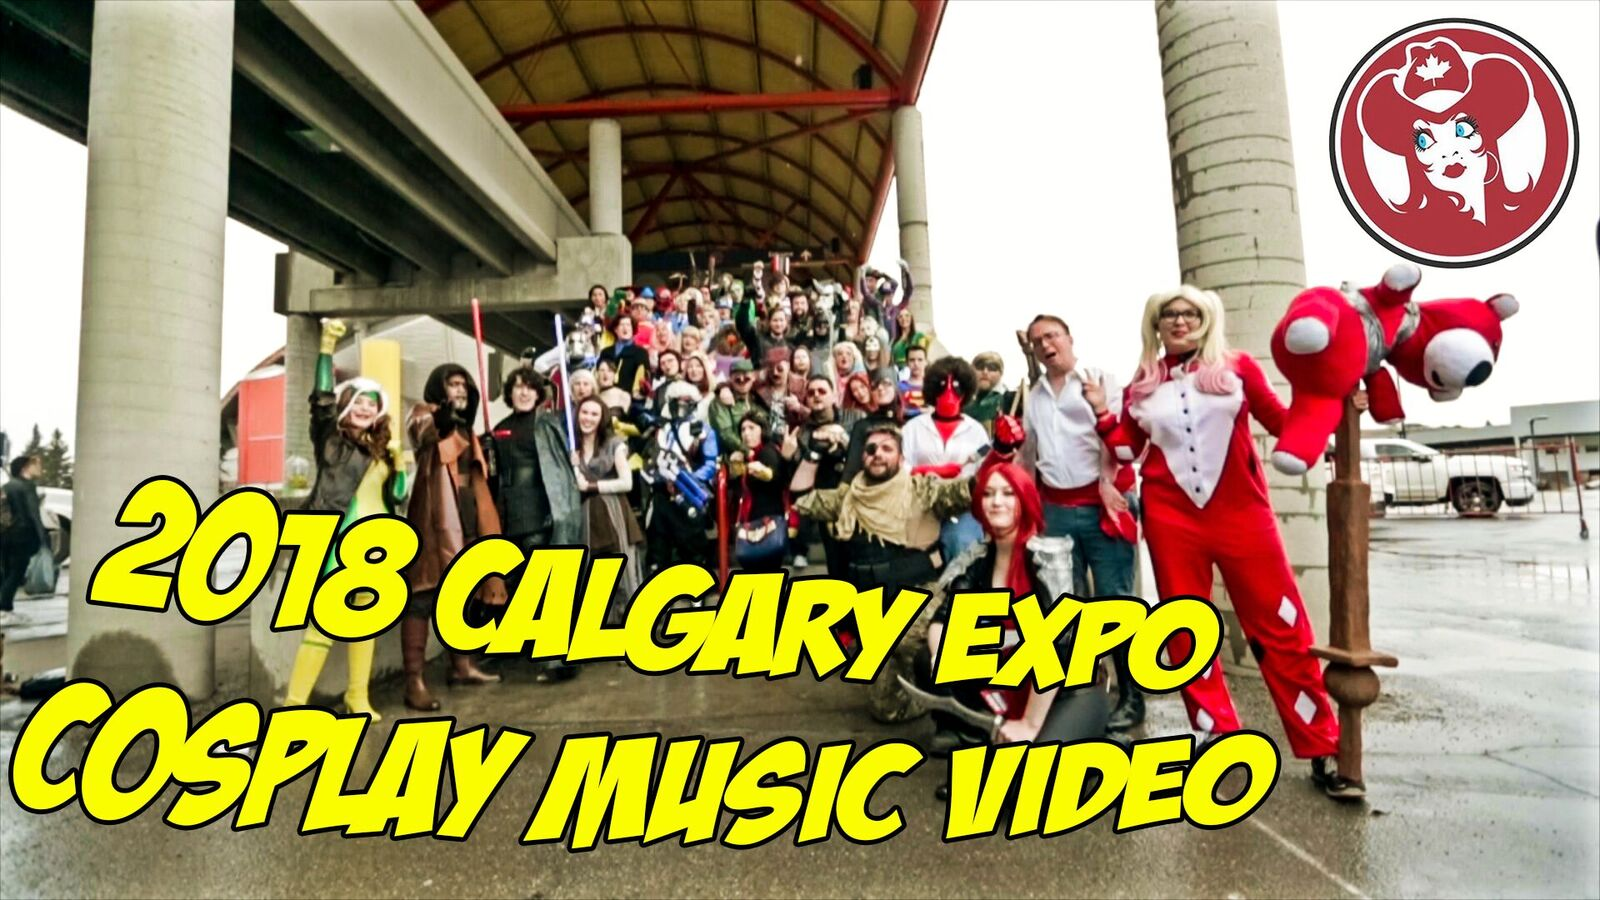 Calgary Expo 2018 - Cosplay Music Video